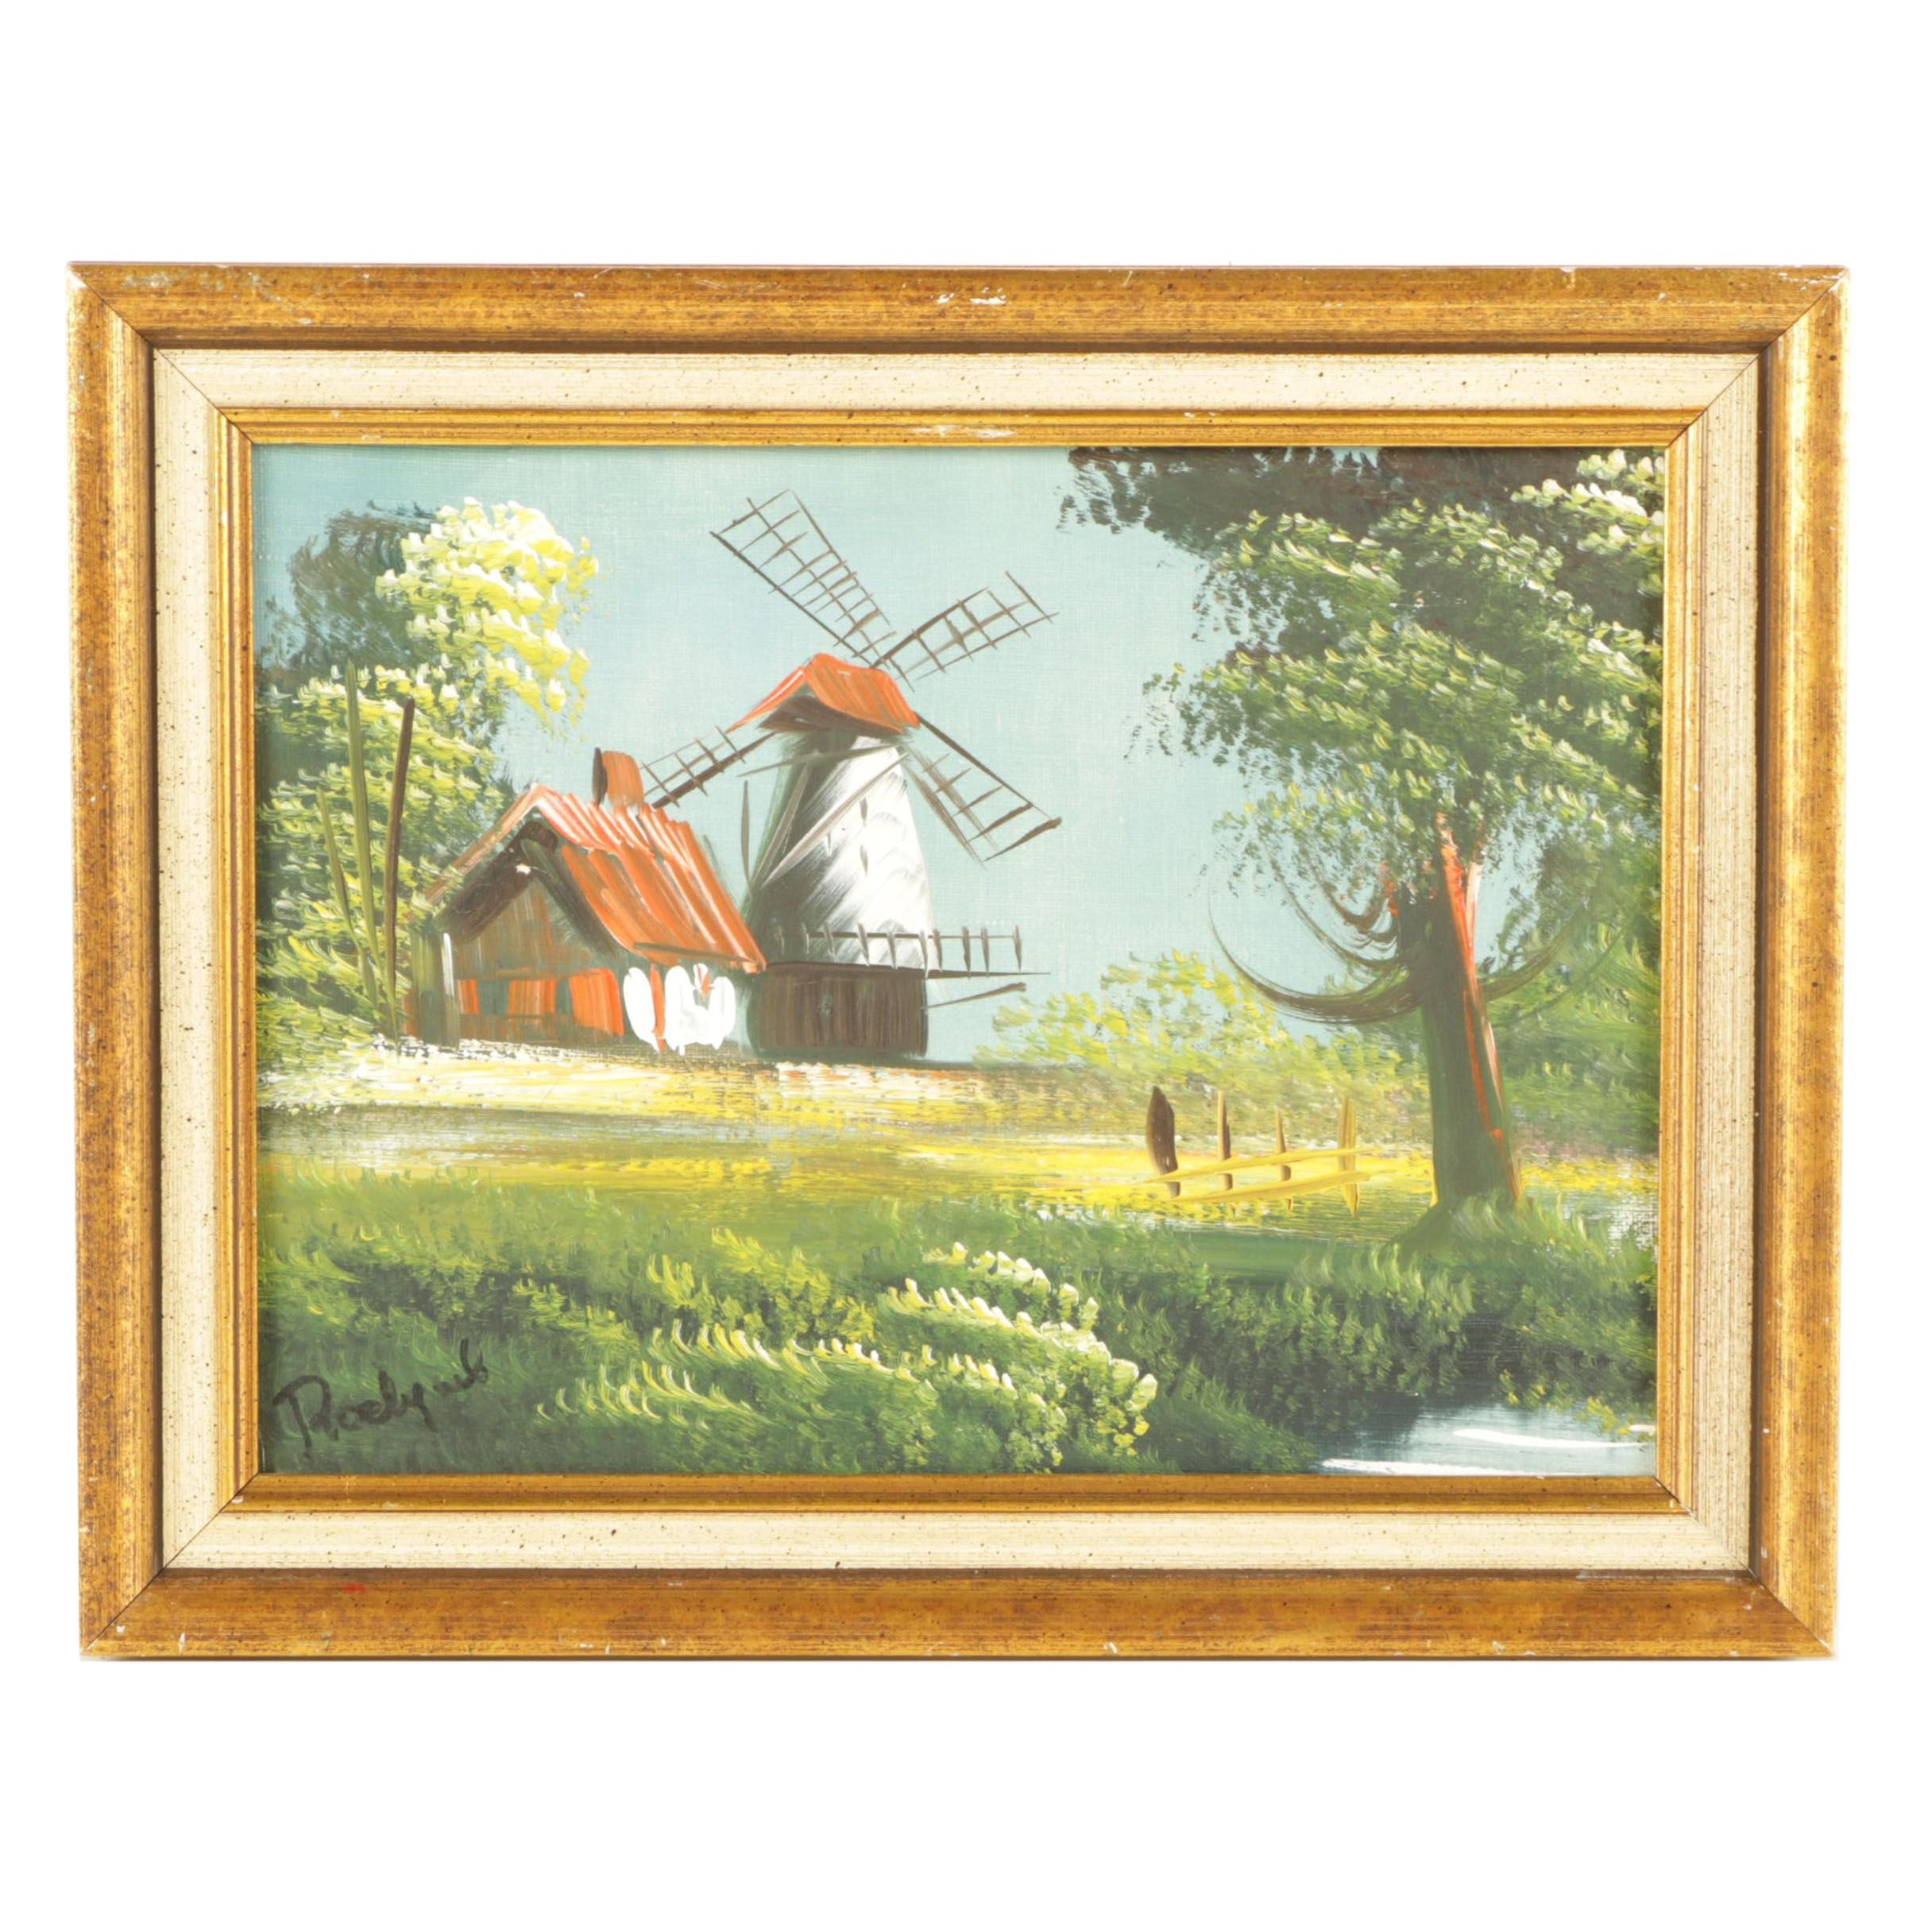 Oil Painting on Canvas of Windmill Scene